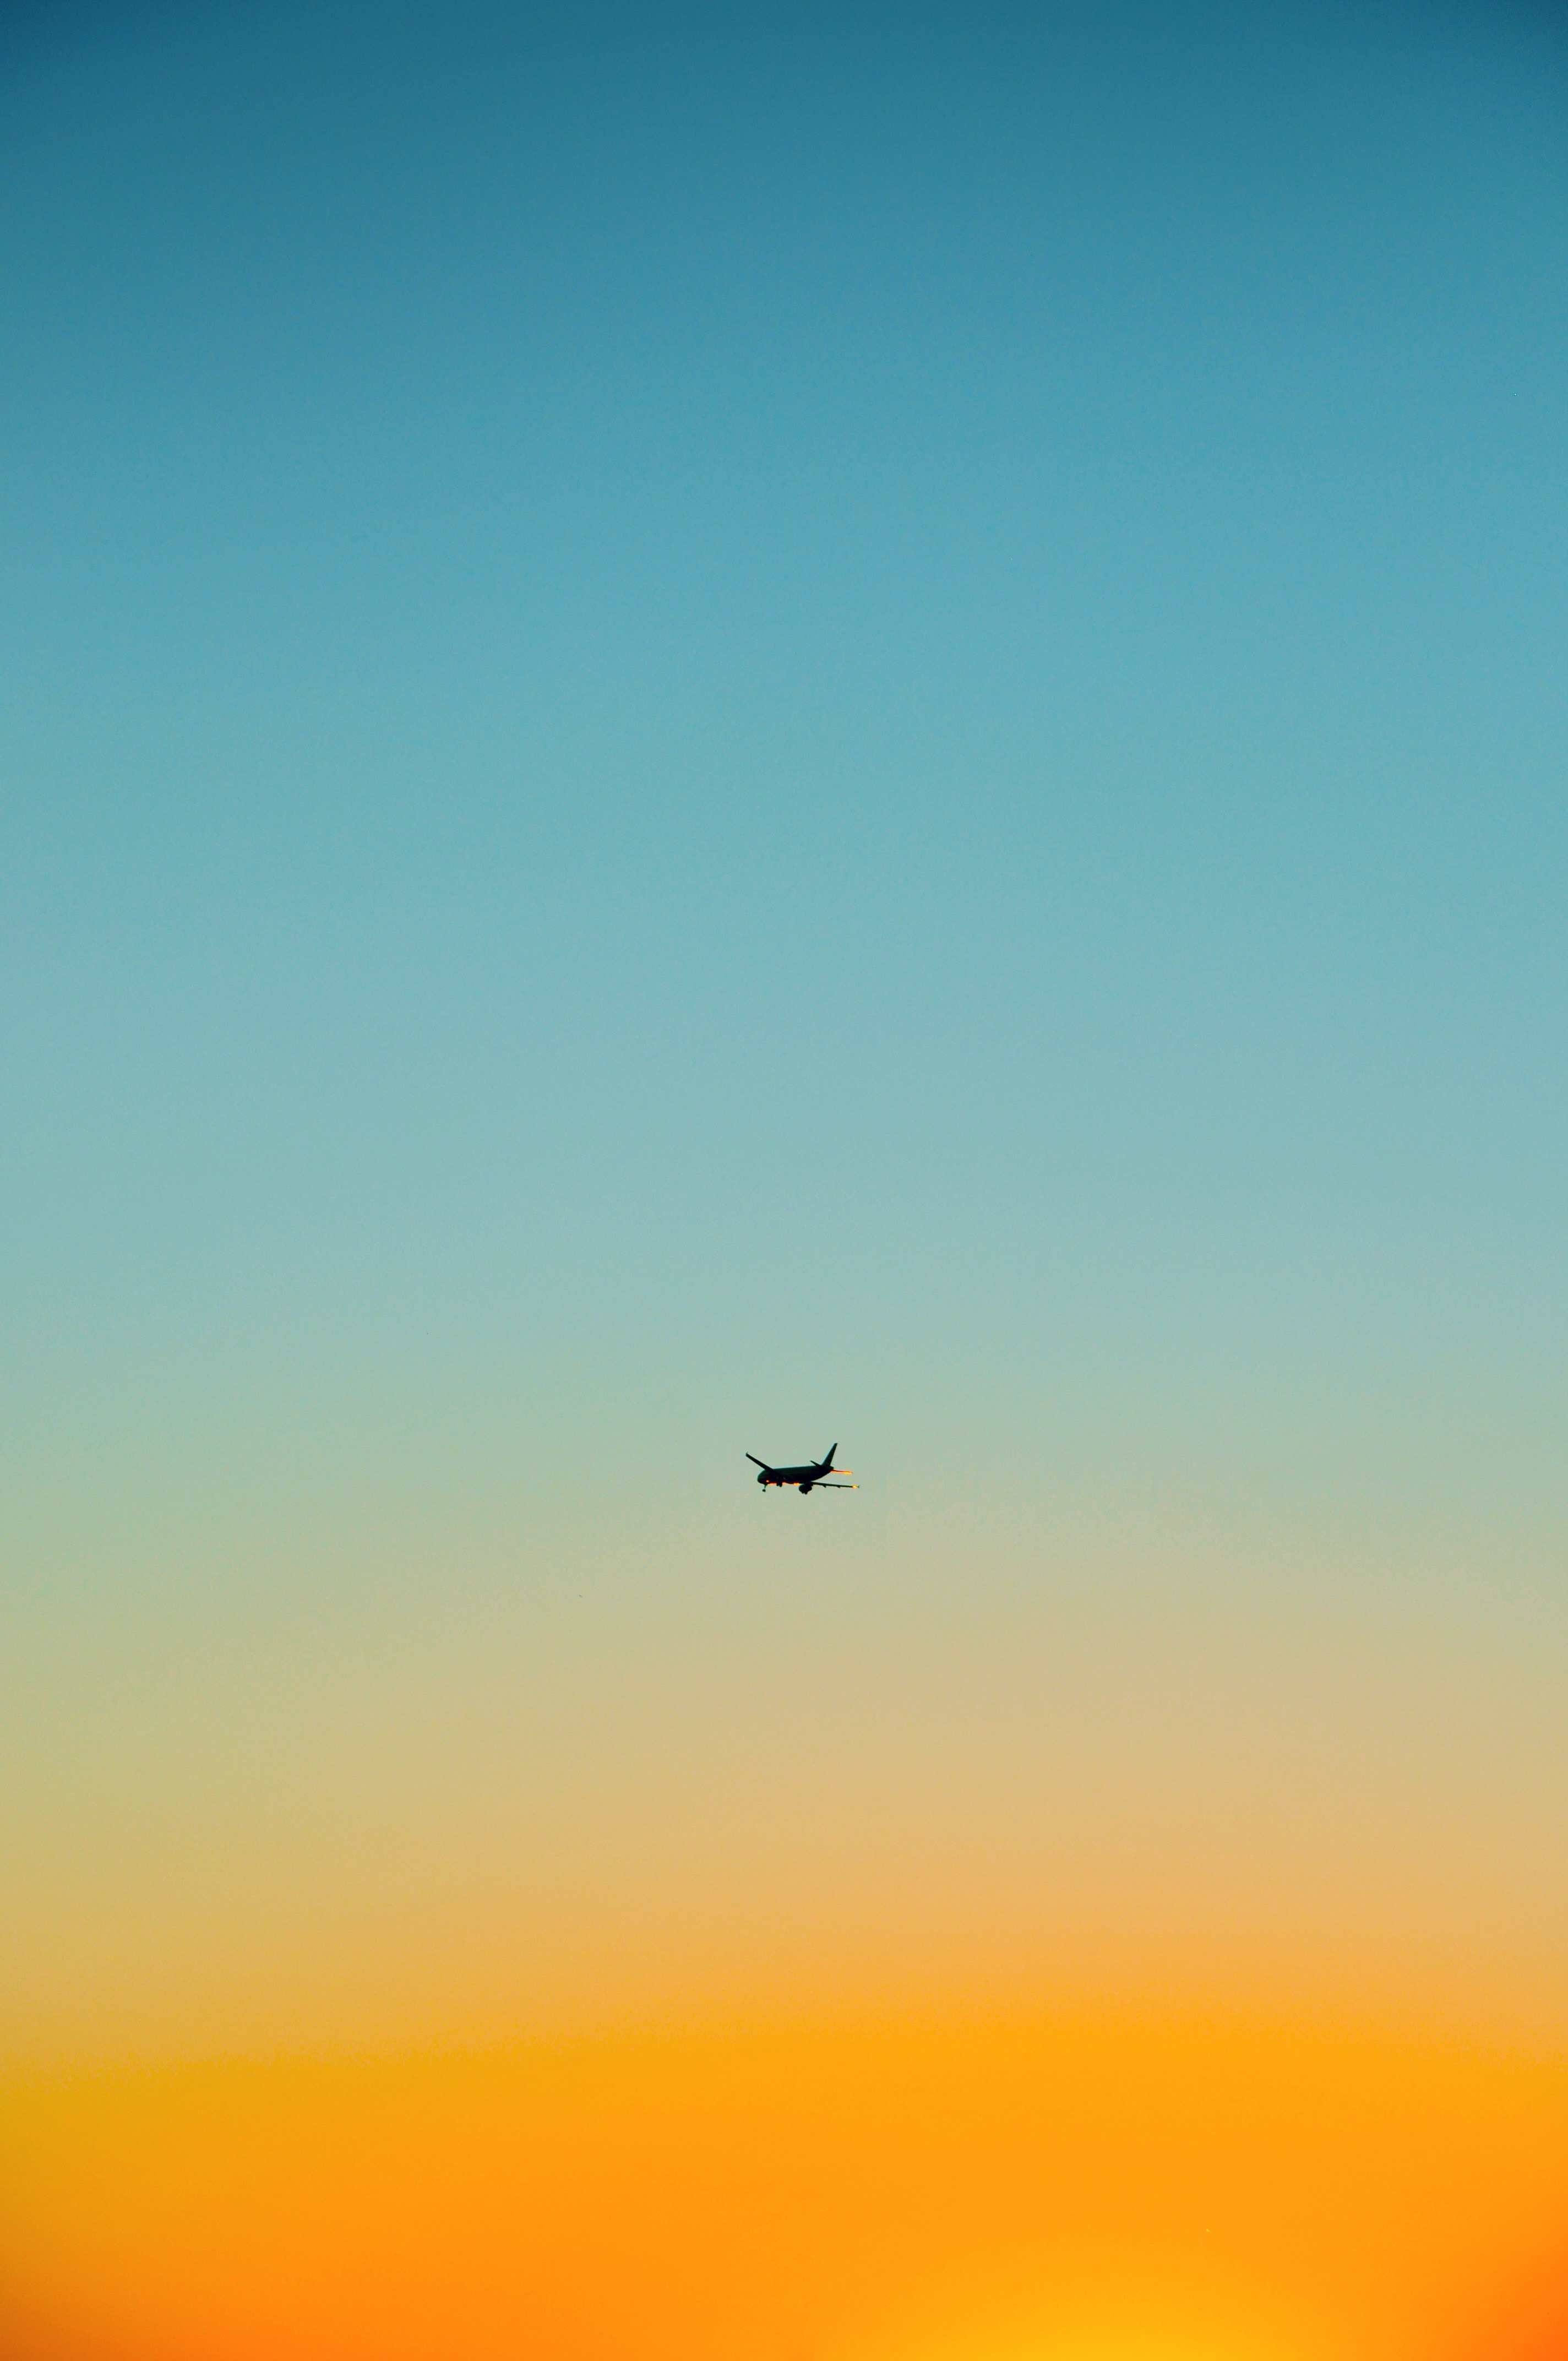 120086 Screensavers and Wallpapers Flight for phone. Download Sky, Minimalism, Flight, Plane, Airplane pictures for free